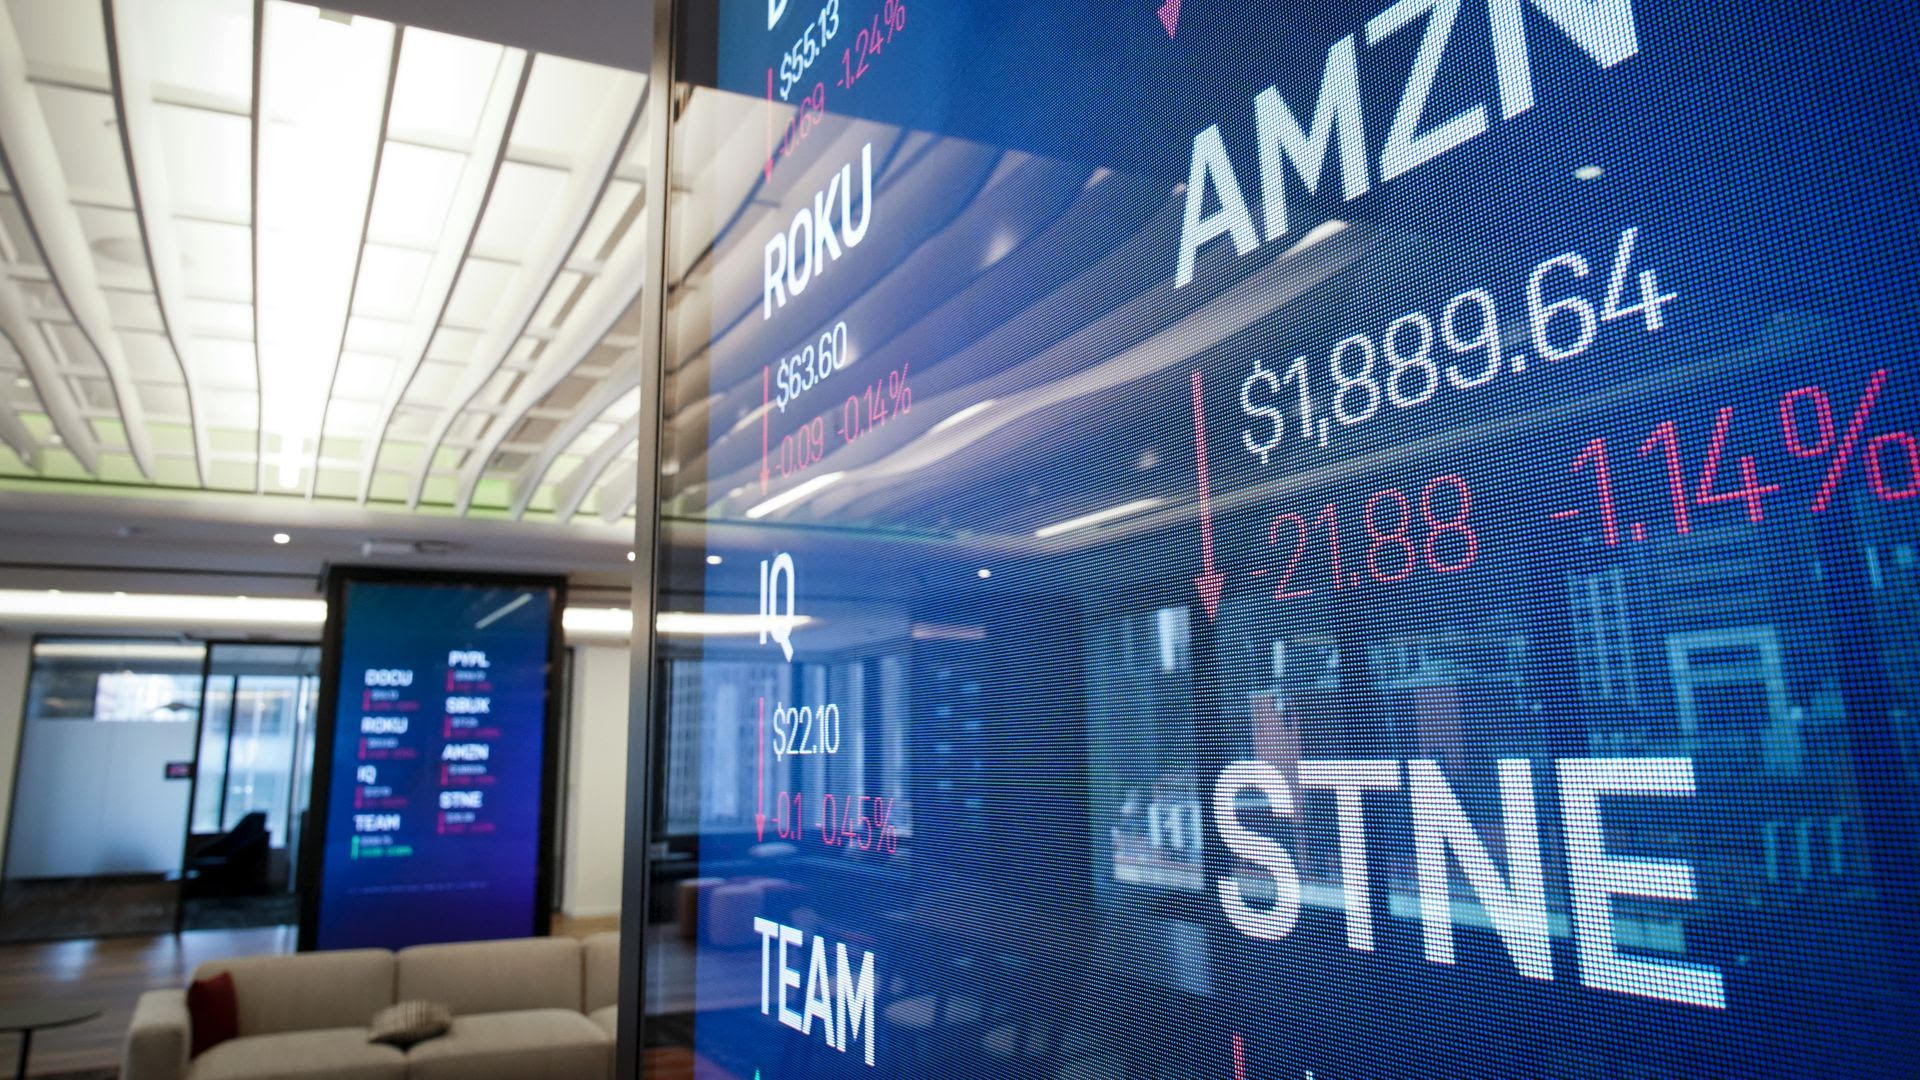 Stock information is displayed on a monitor at Nasdaq's office in Times Square. Photo: Drew Angerer/Getty Images